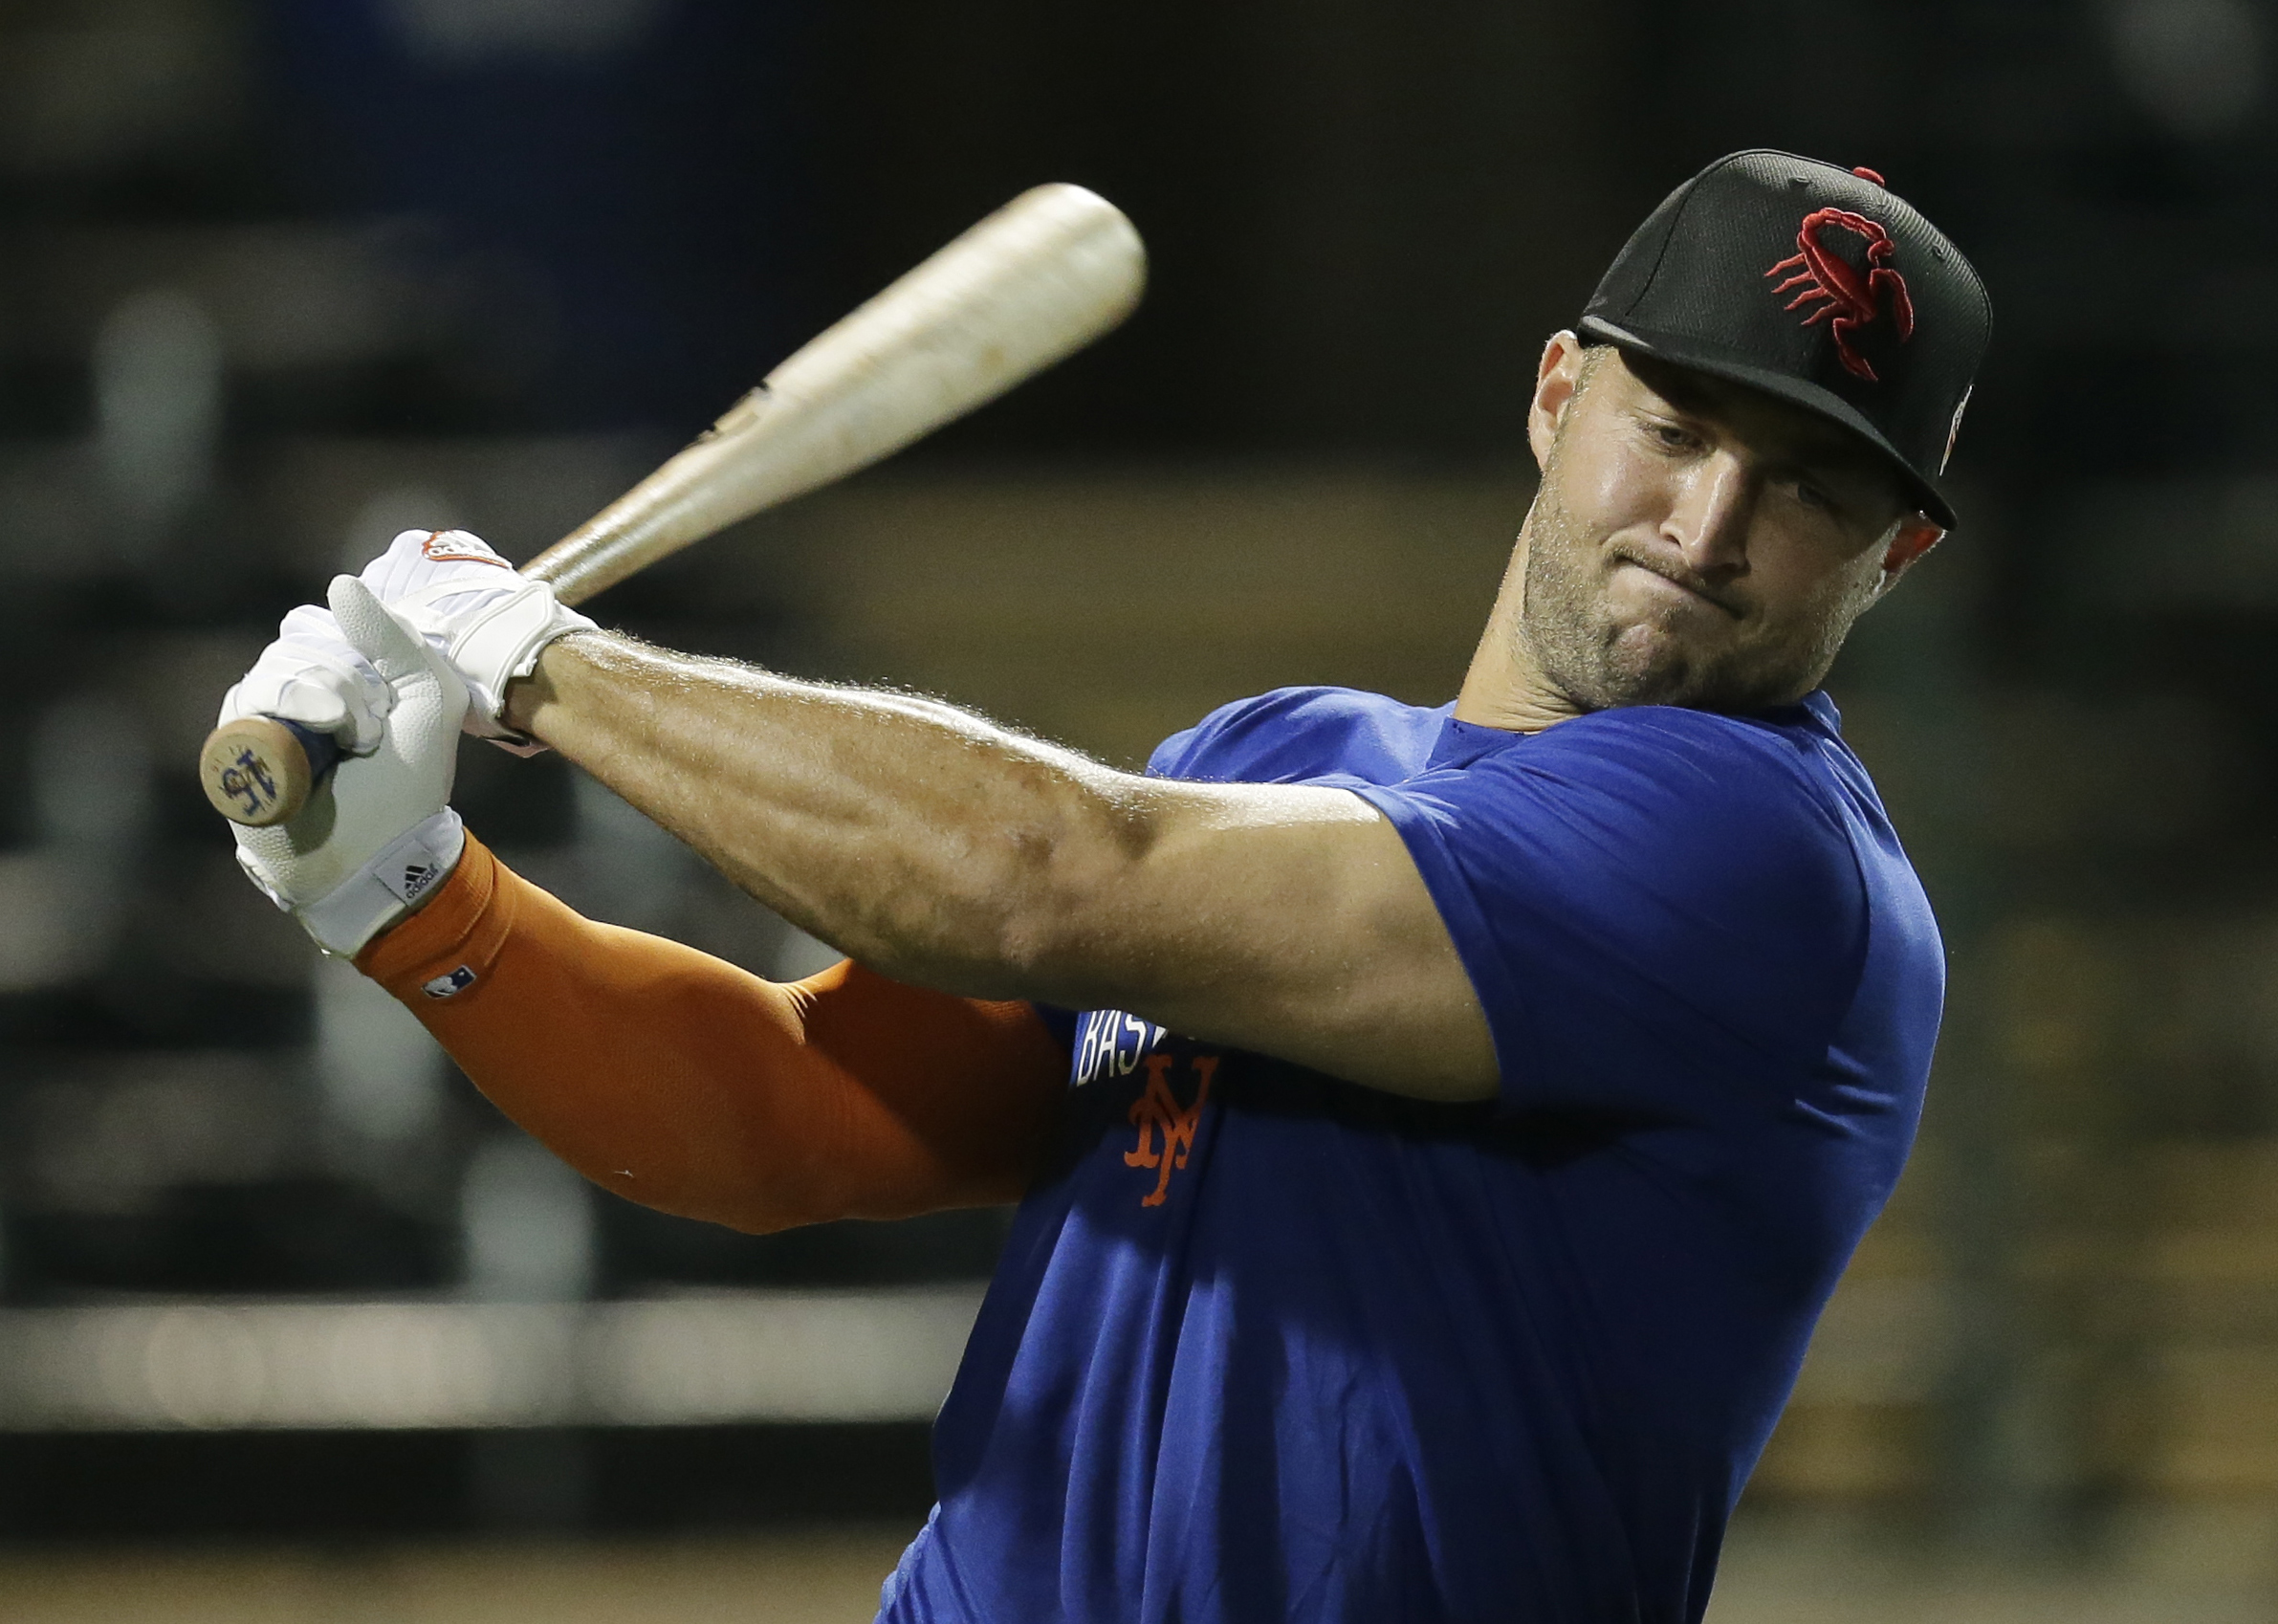 Former NFL quarterback Tim Tebow warms up before baseball practice for the Arizona Fall League, Monday, Oct. 10, 2016, in Scottsdale, Ariz. (AP Photo/Rick Scuteri)